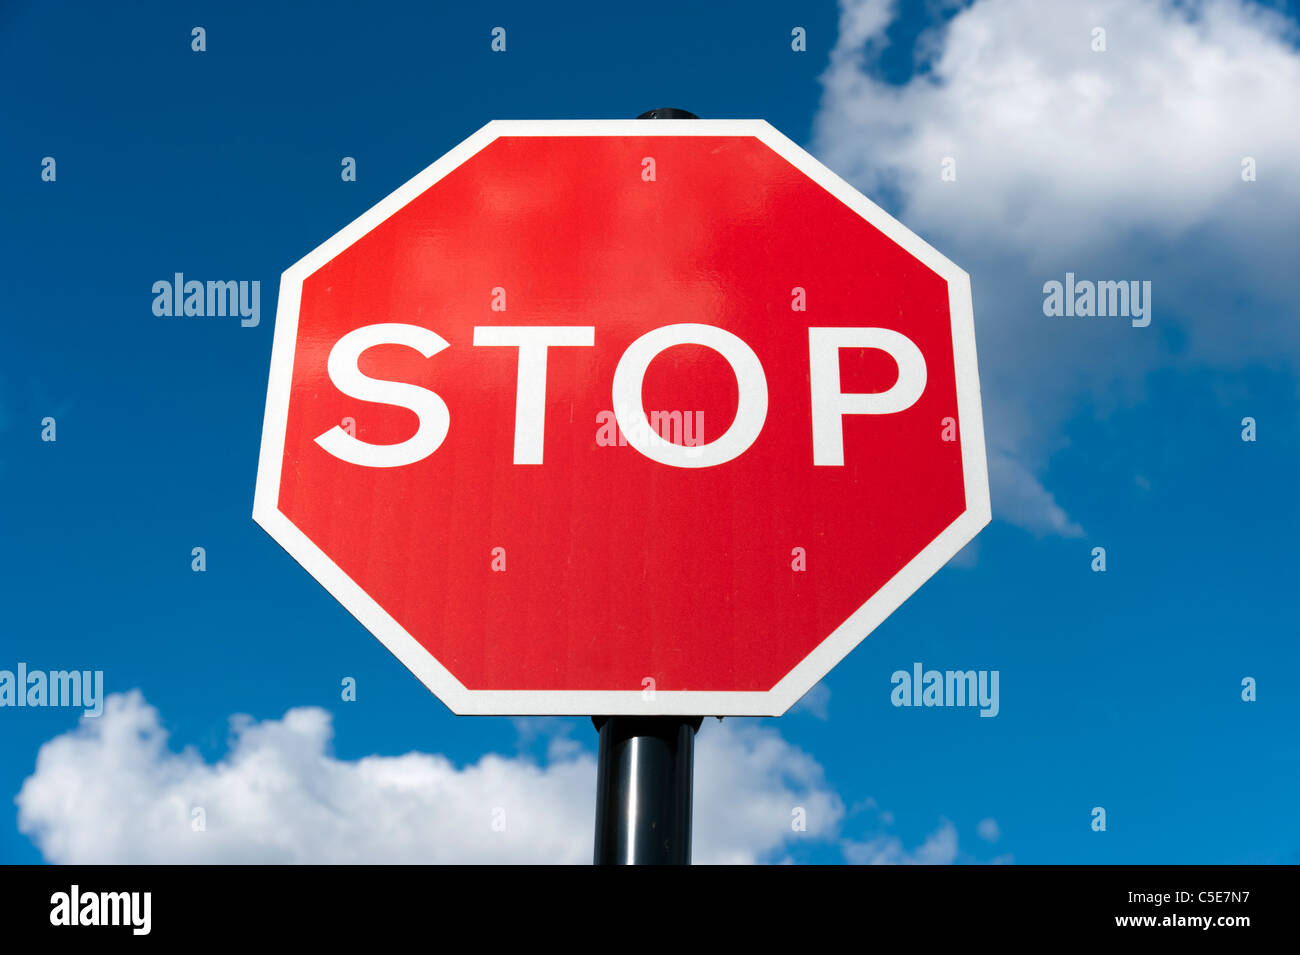 Red stop sign, UK - Stock Image